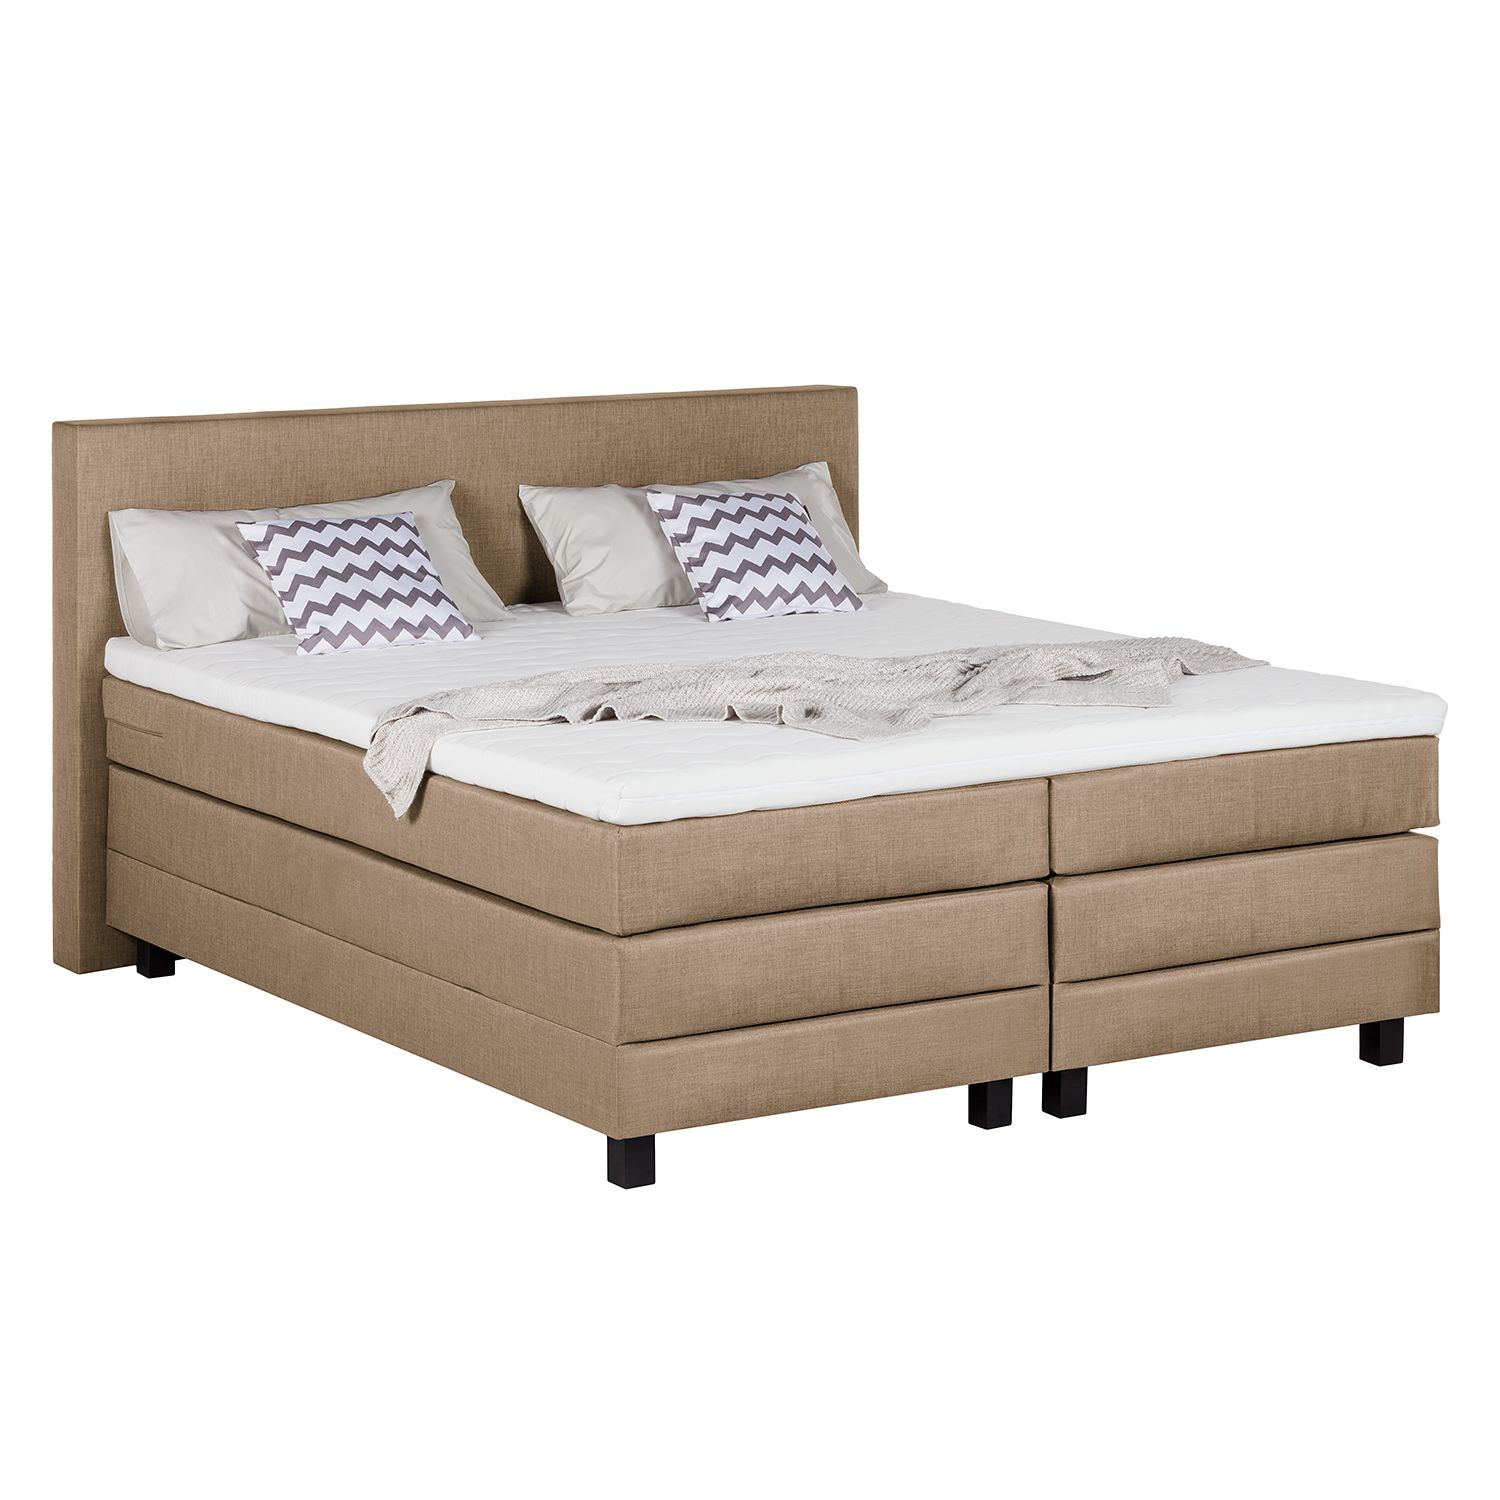 Lit boxspring Splendid Night - 180 x 200cm - D2 jusqu'à 80 kg - Taupe, Grand Selection